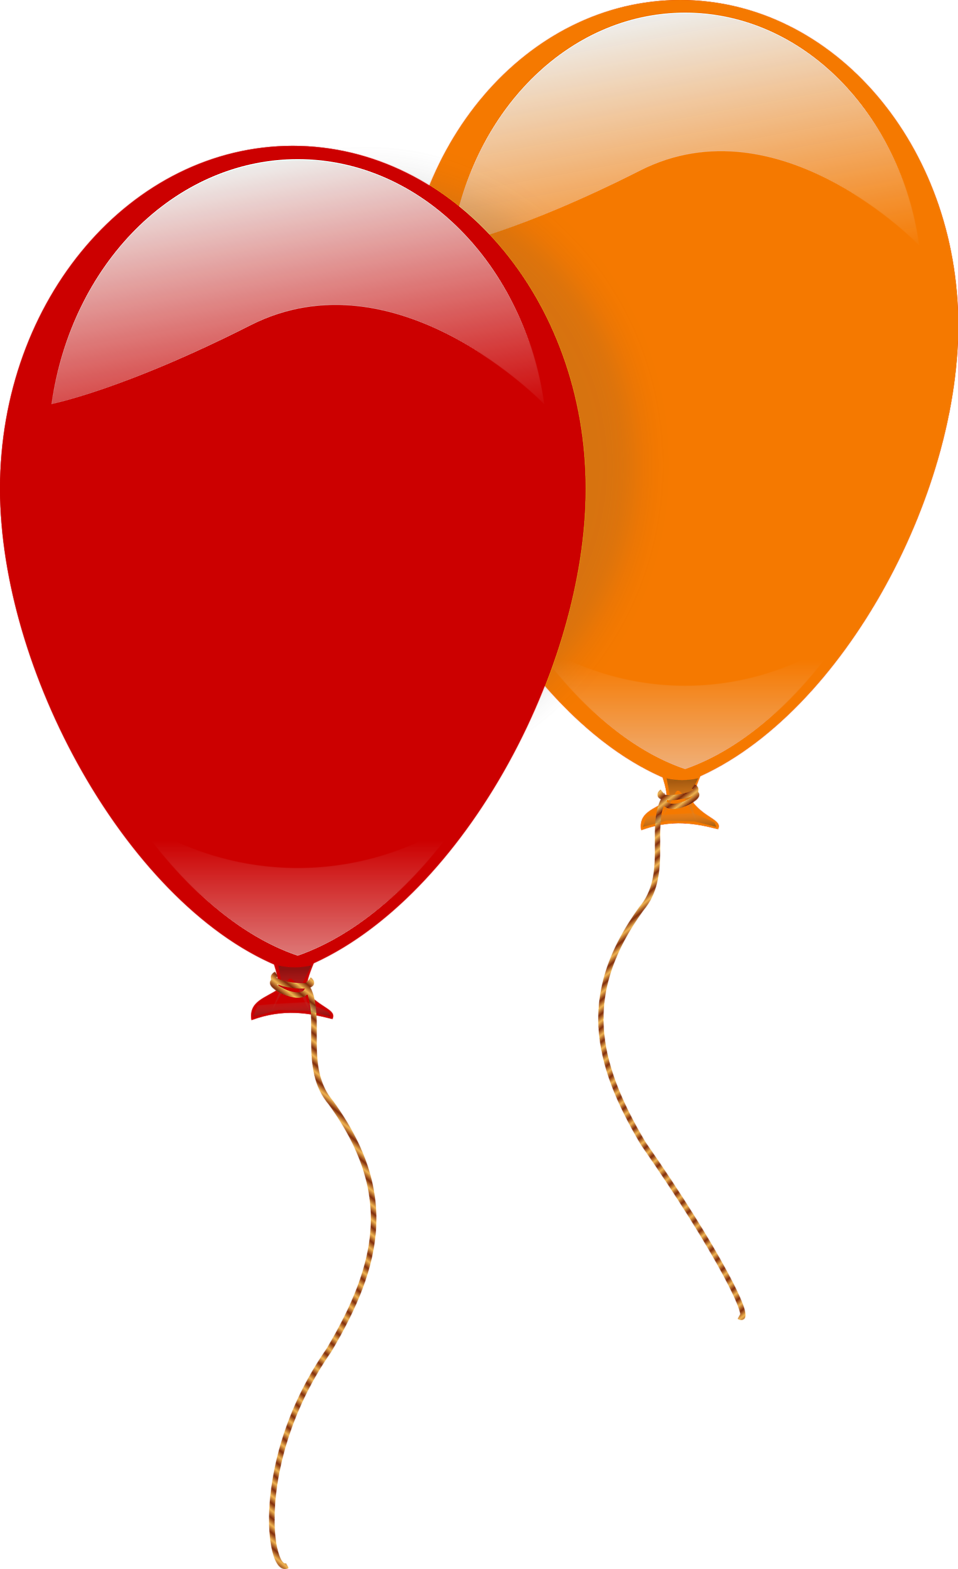 Balloons | Free Stock Photo | Illustration of a red and an orange ...